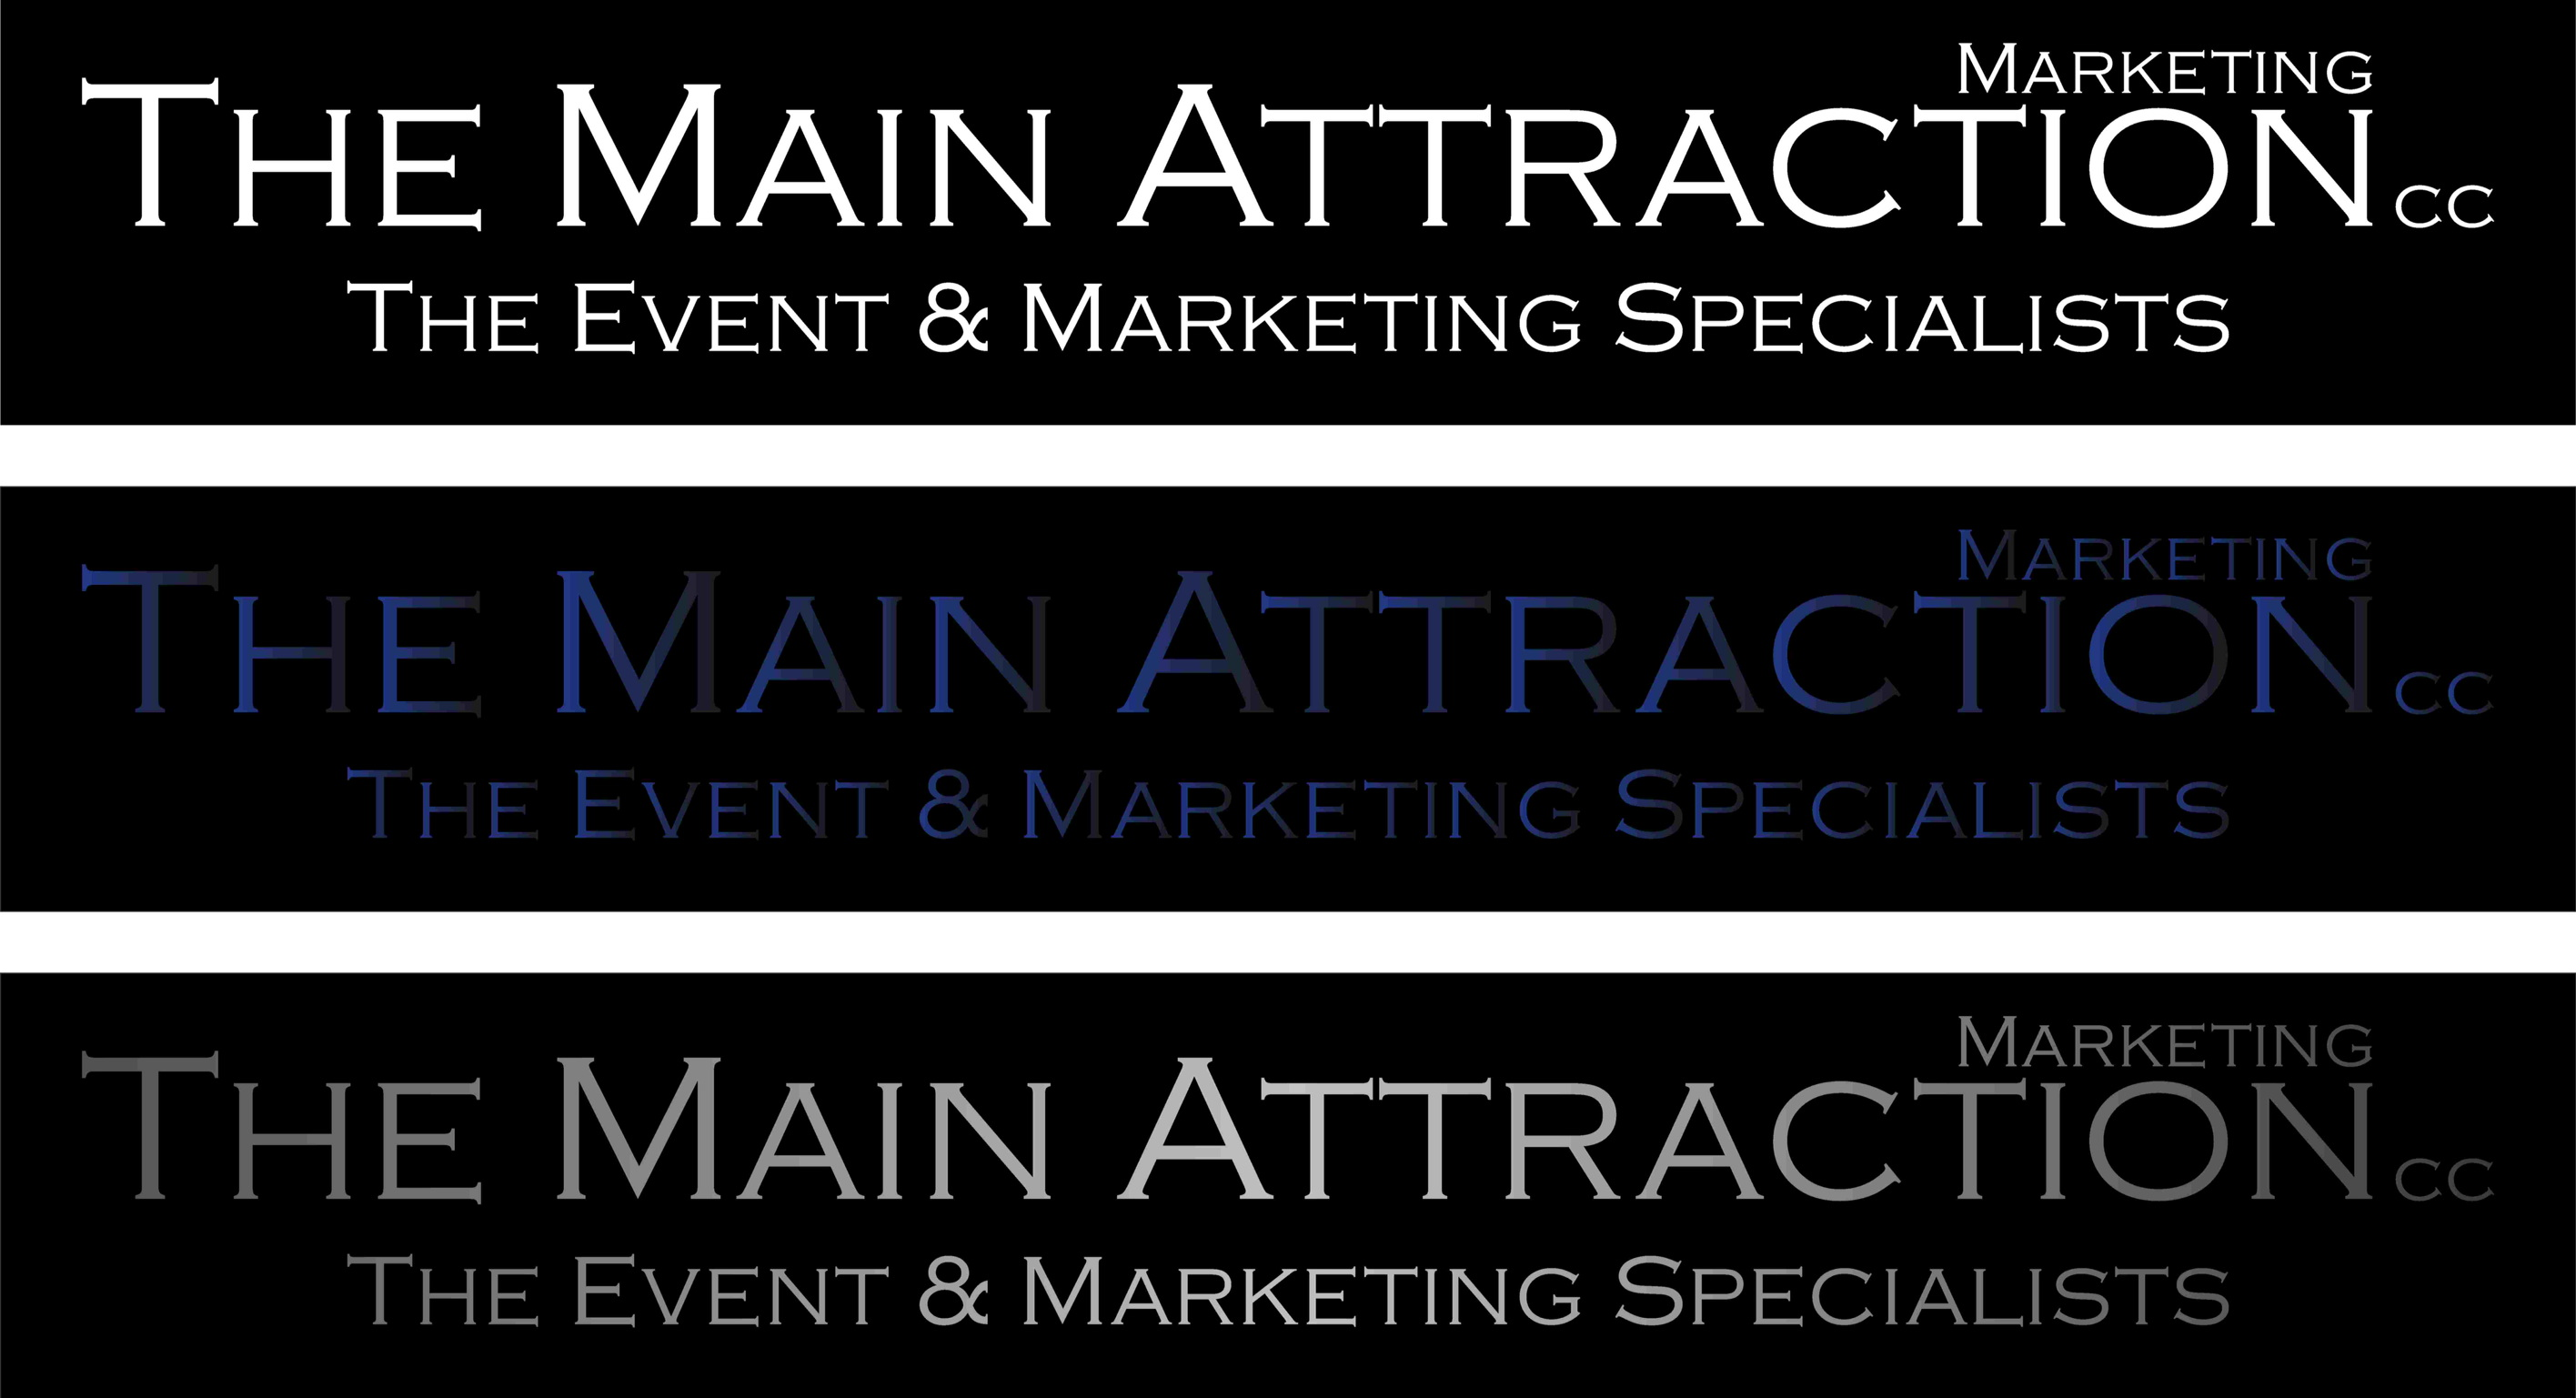 Foto de The Main Attraction Marketing Johannesburg